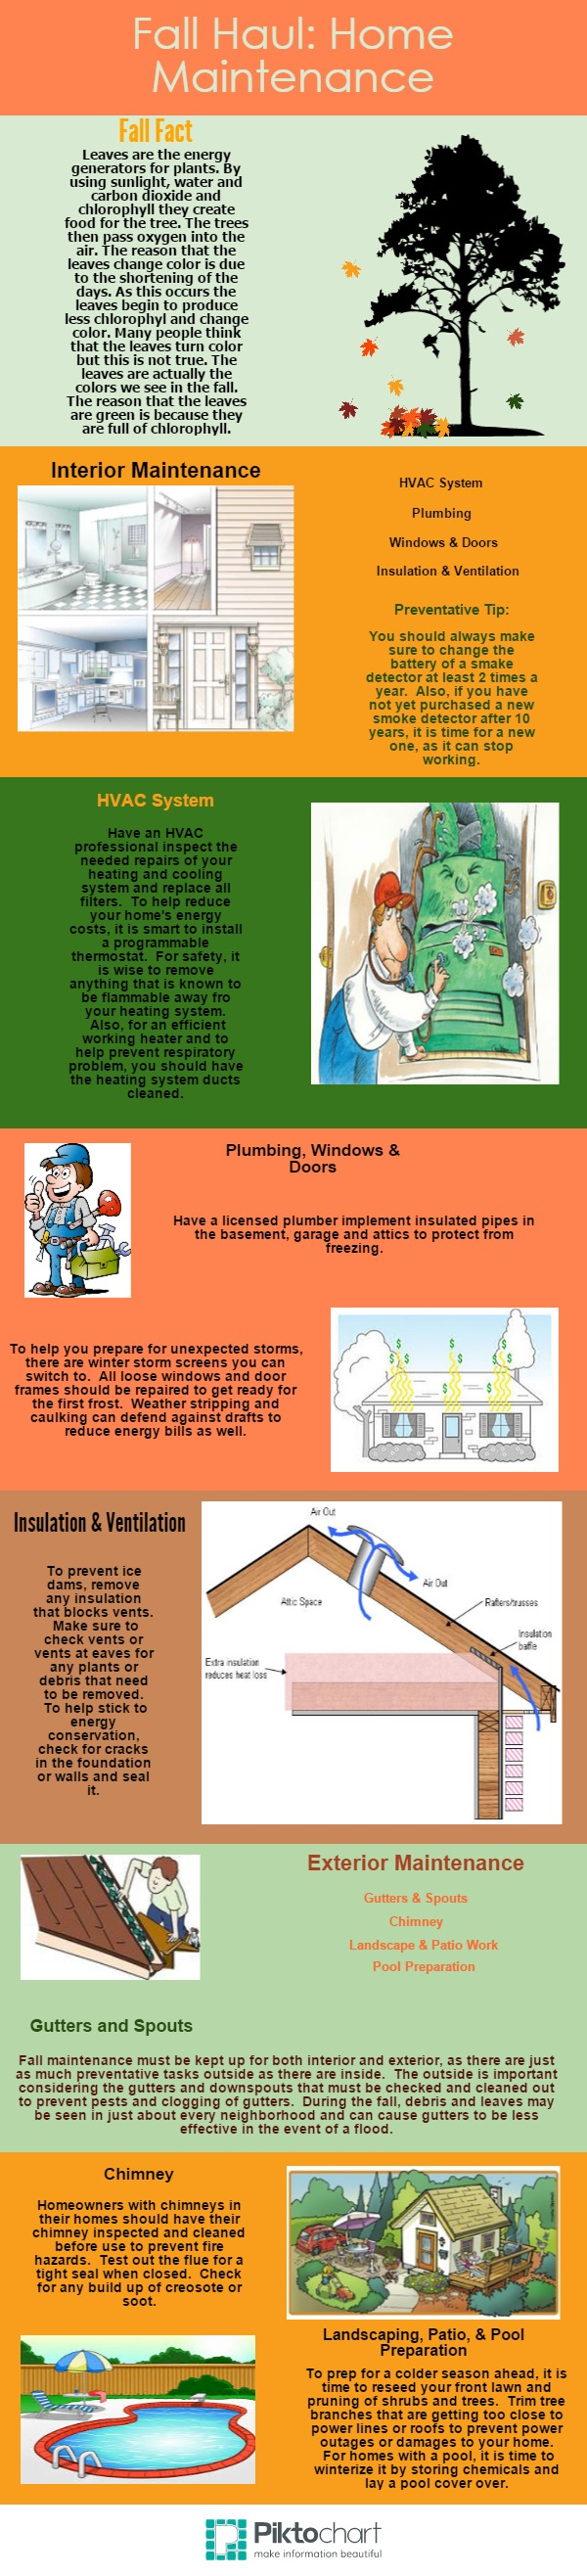 Fall - Home Maintenance Tips (2)